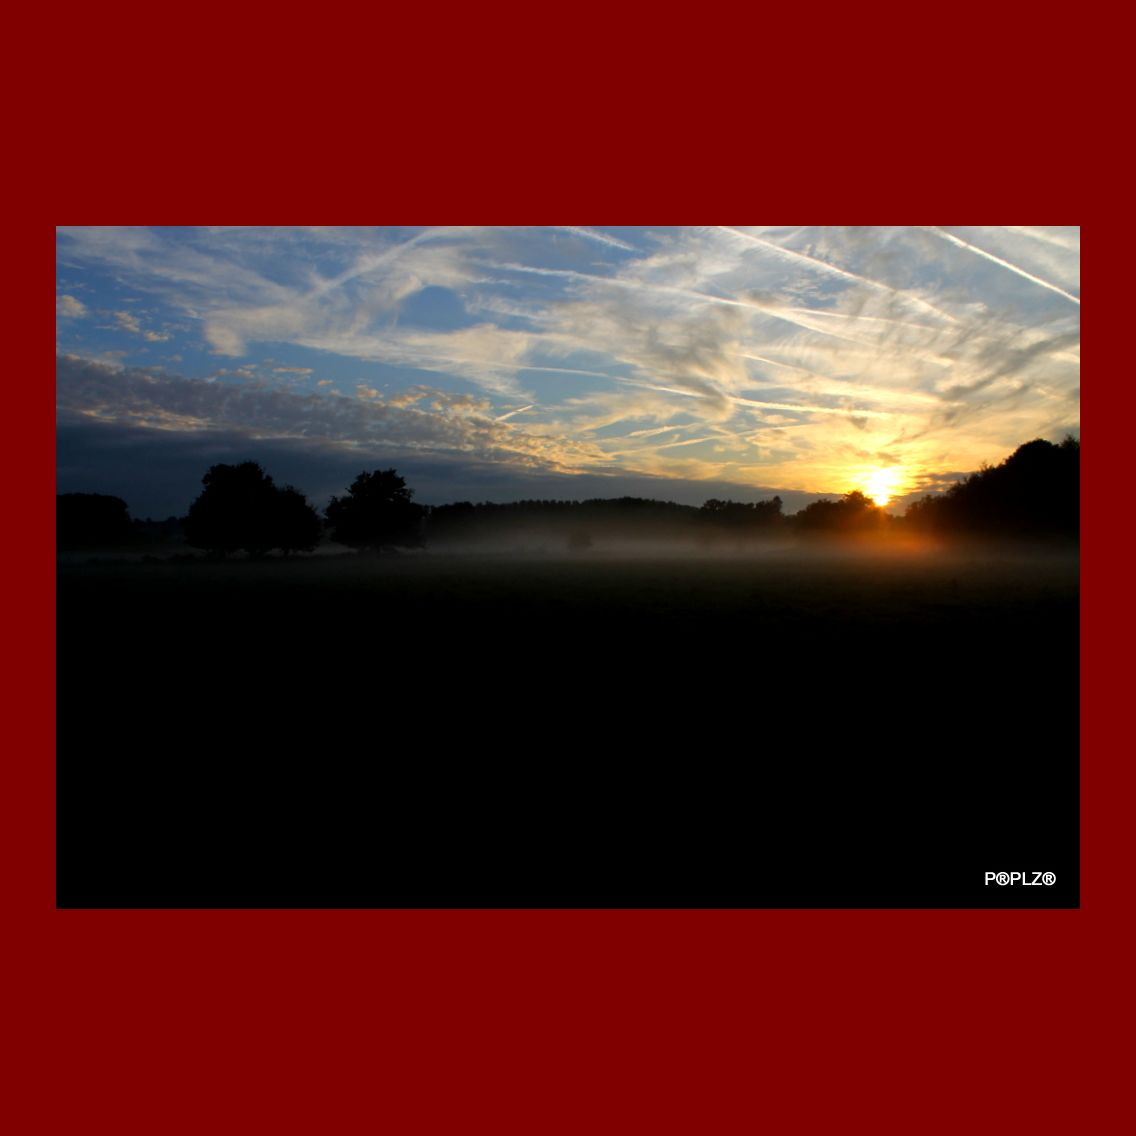 Photograph Indian Summer Sunset II by Carl Lapiere on 500px